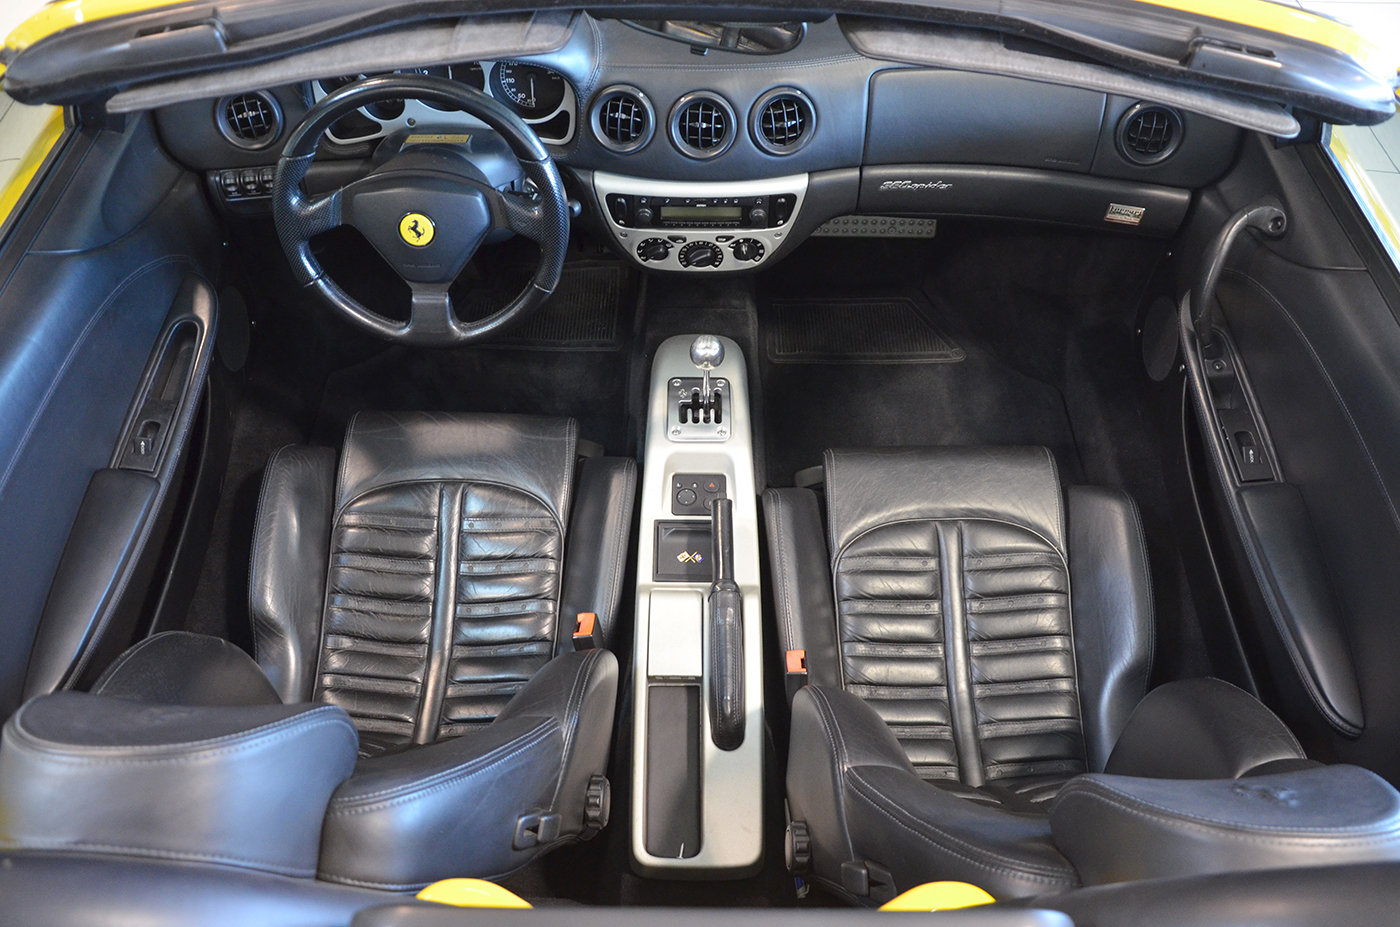 2001 - Ferrari 360 Spider Manual LHD Giallo Modena For Sale (picture 4 of 6)